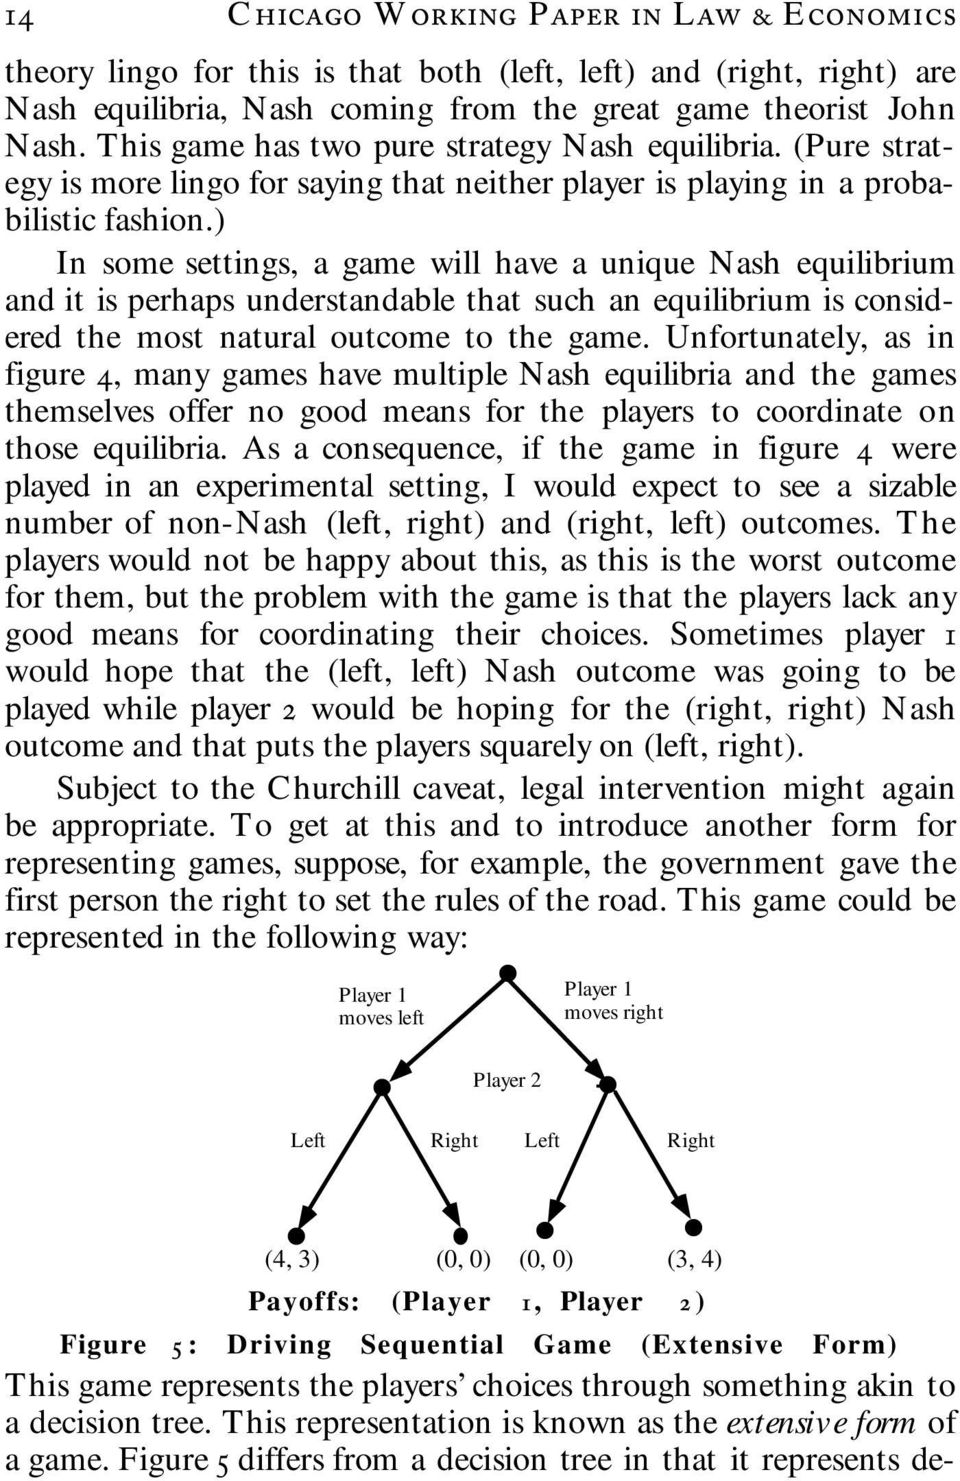 ) In some settings, a game will have a unique Nash equilibrium and it is perhaps understandable that such an equilibrium is considered the most natural outcome to the game.